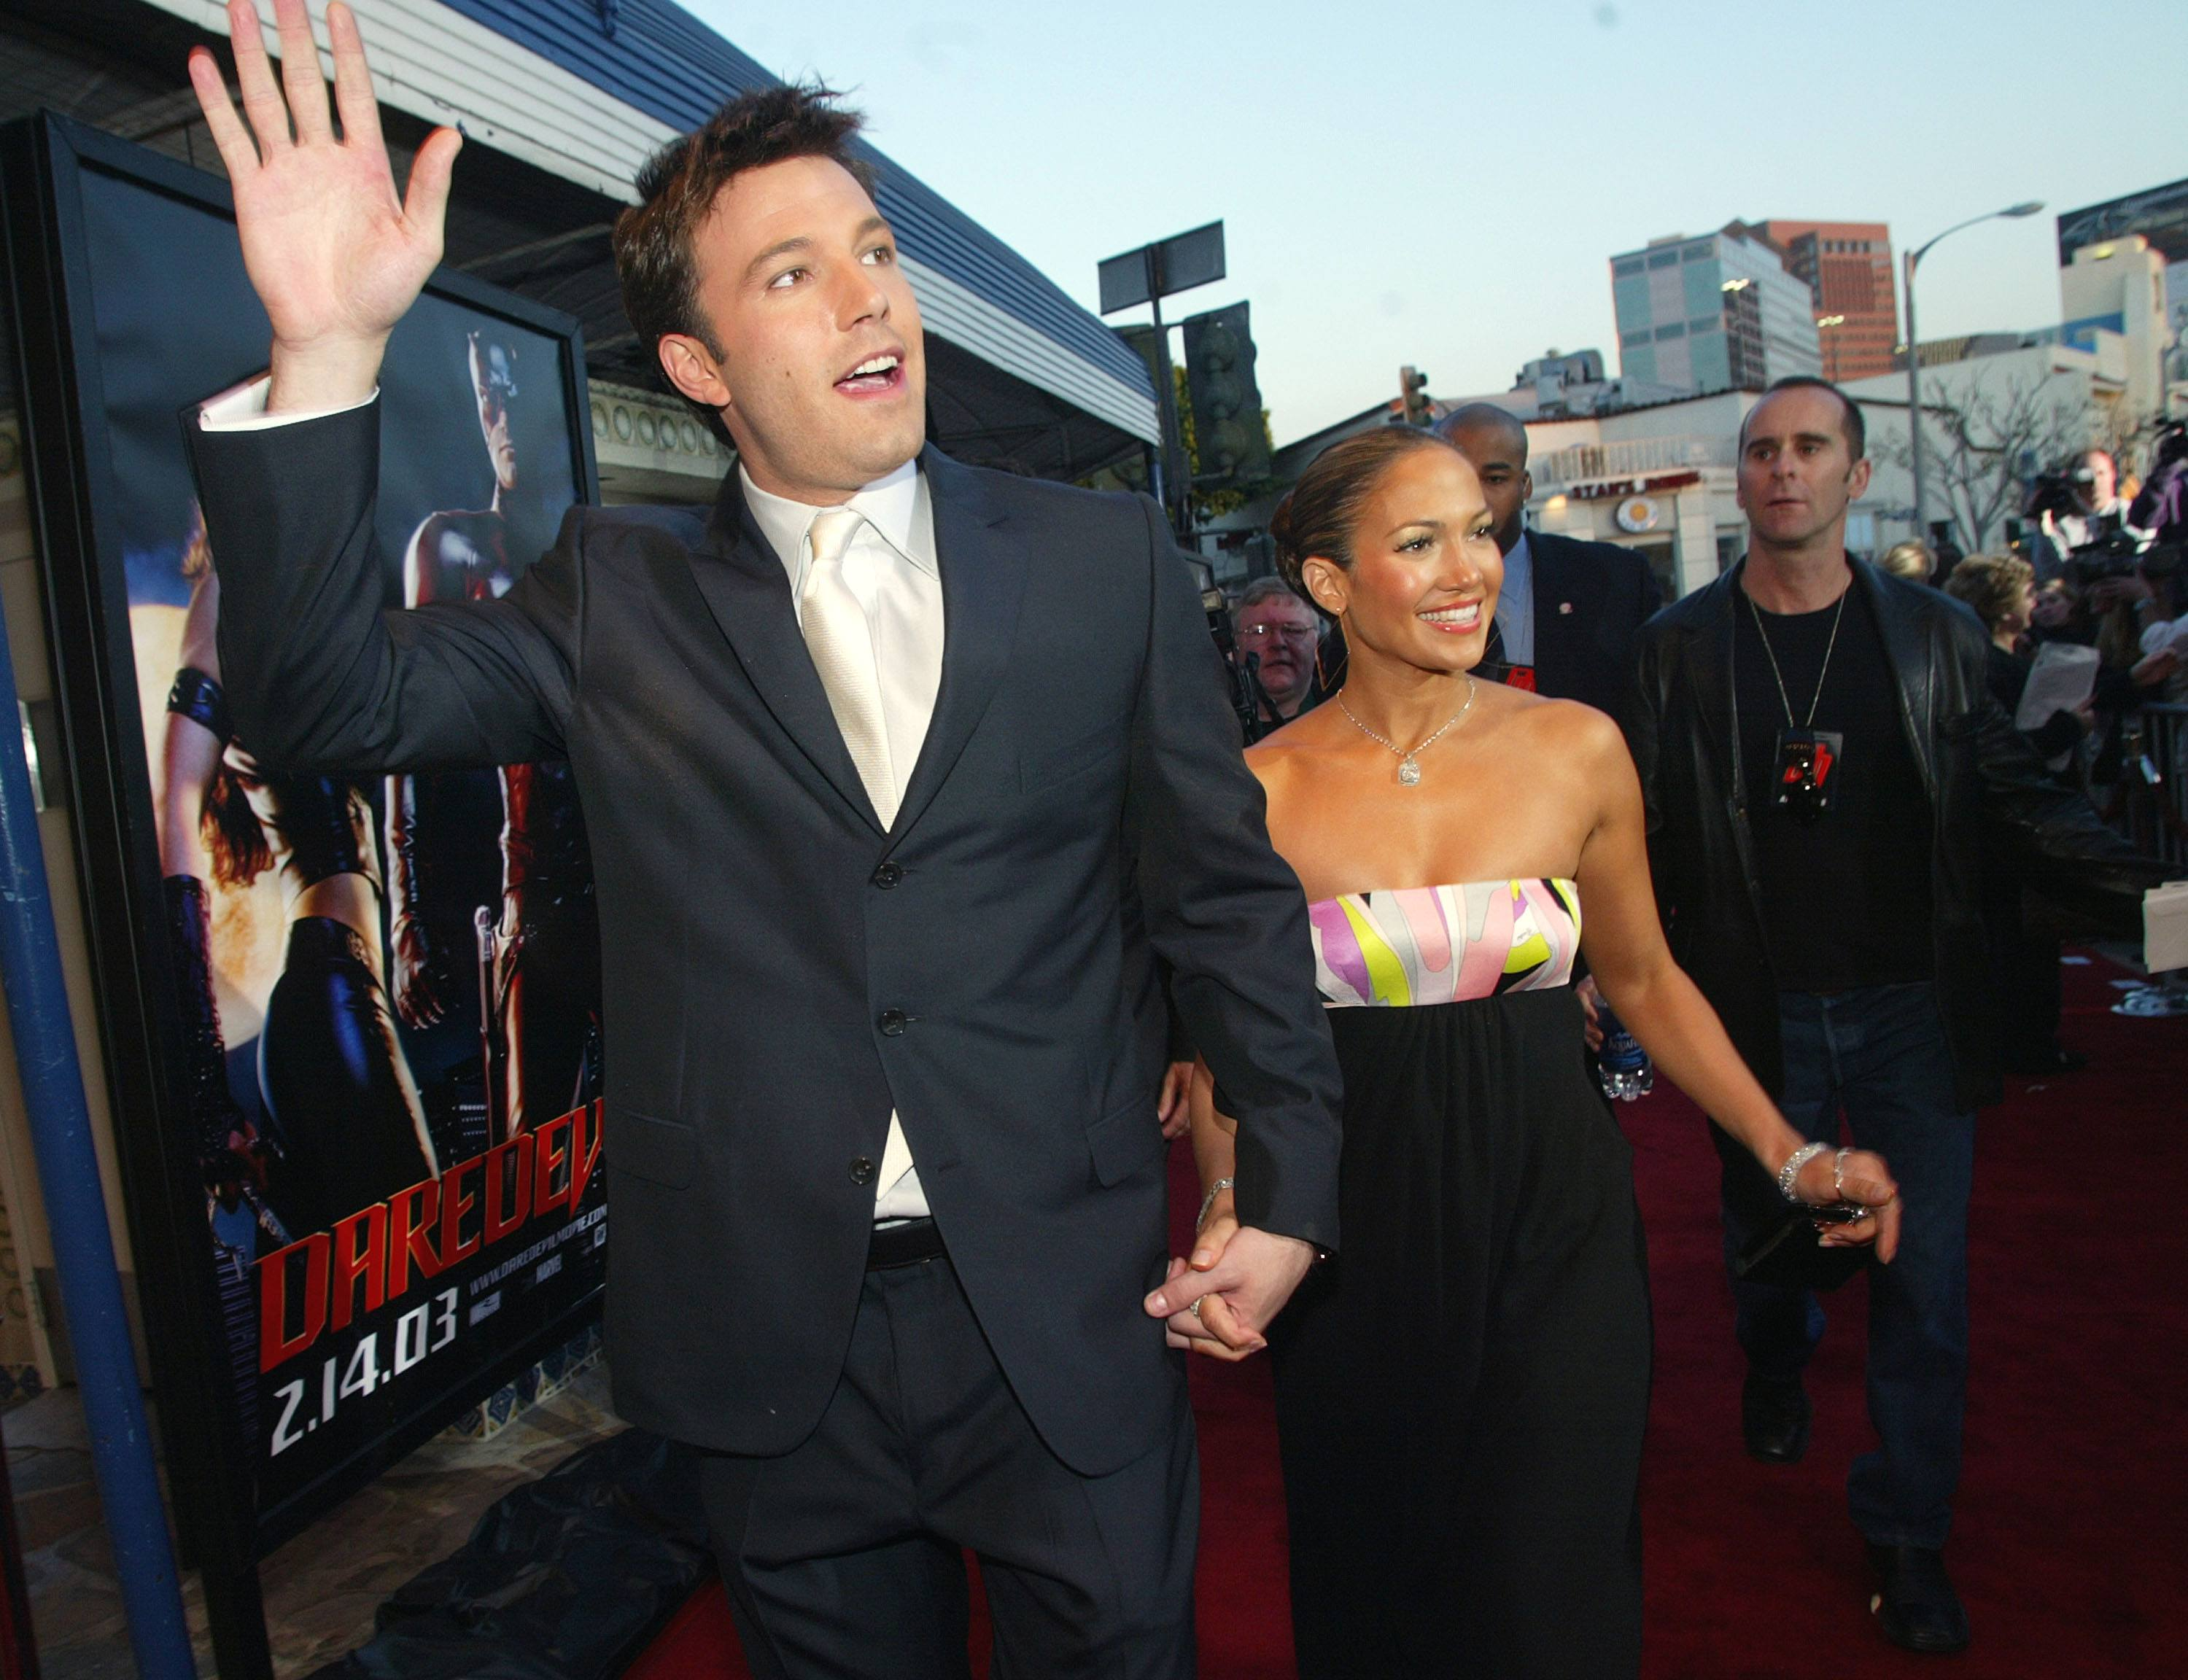 Actor Ben Affleck (L) and his fiance actress/singer Jennifer Lopez arrive at the premiere of 'Daredevil' at the Village Theatre on February 9, 2003 in Los Angeles, California.